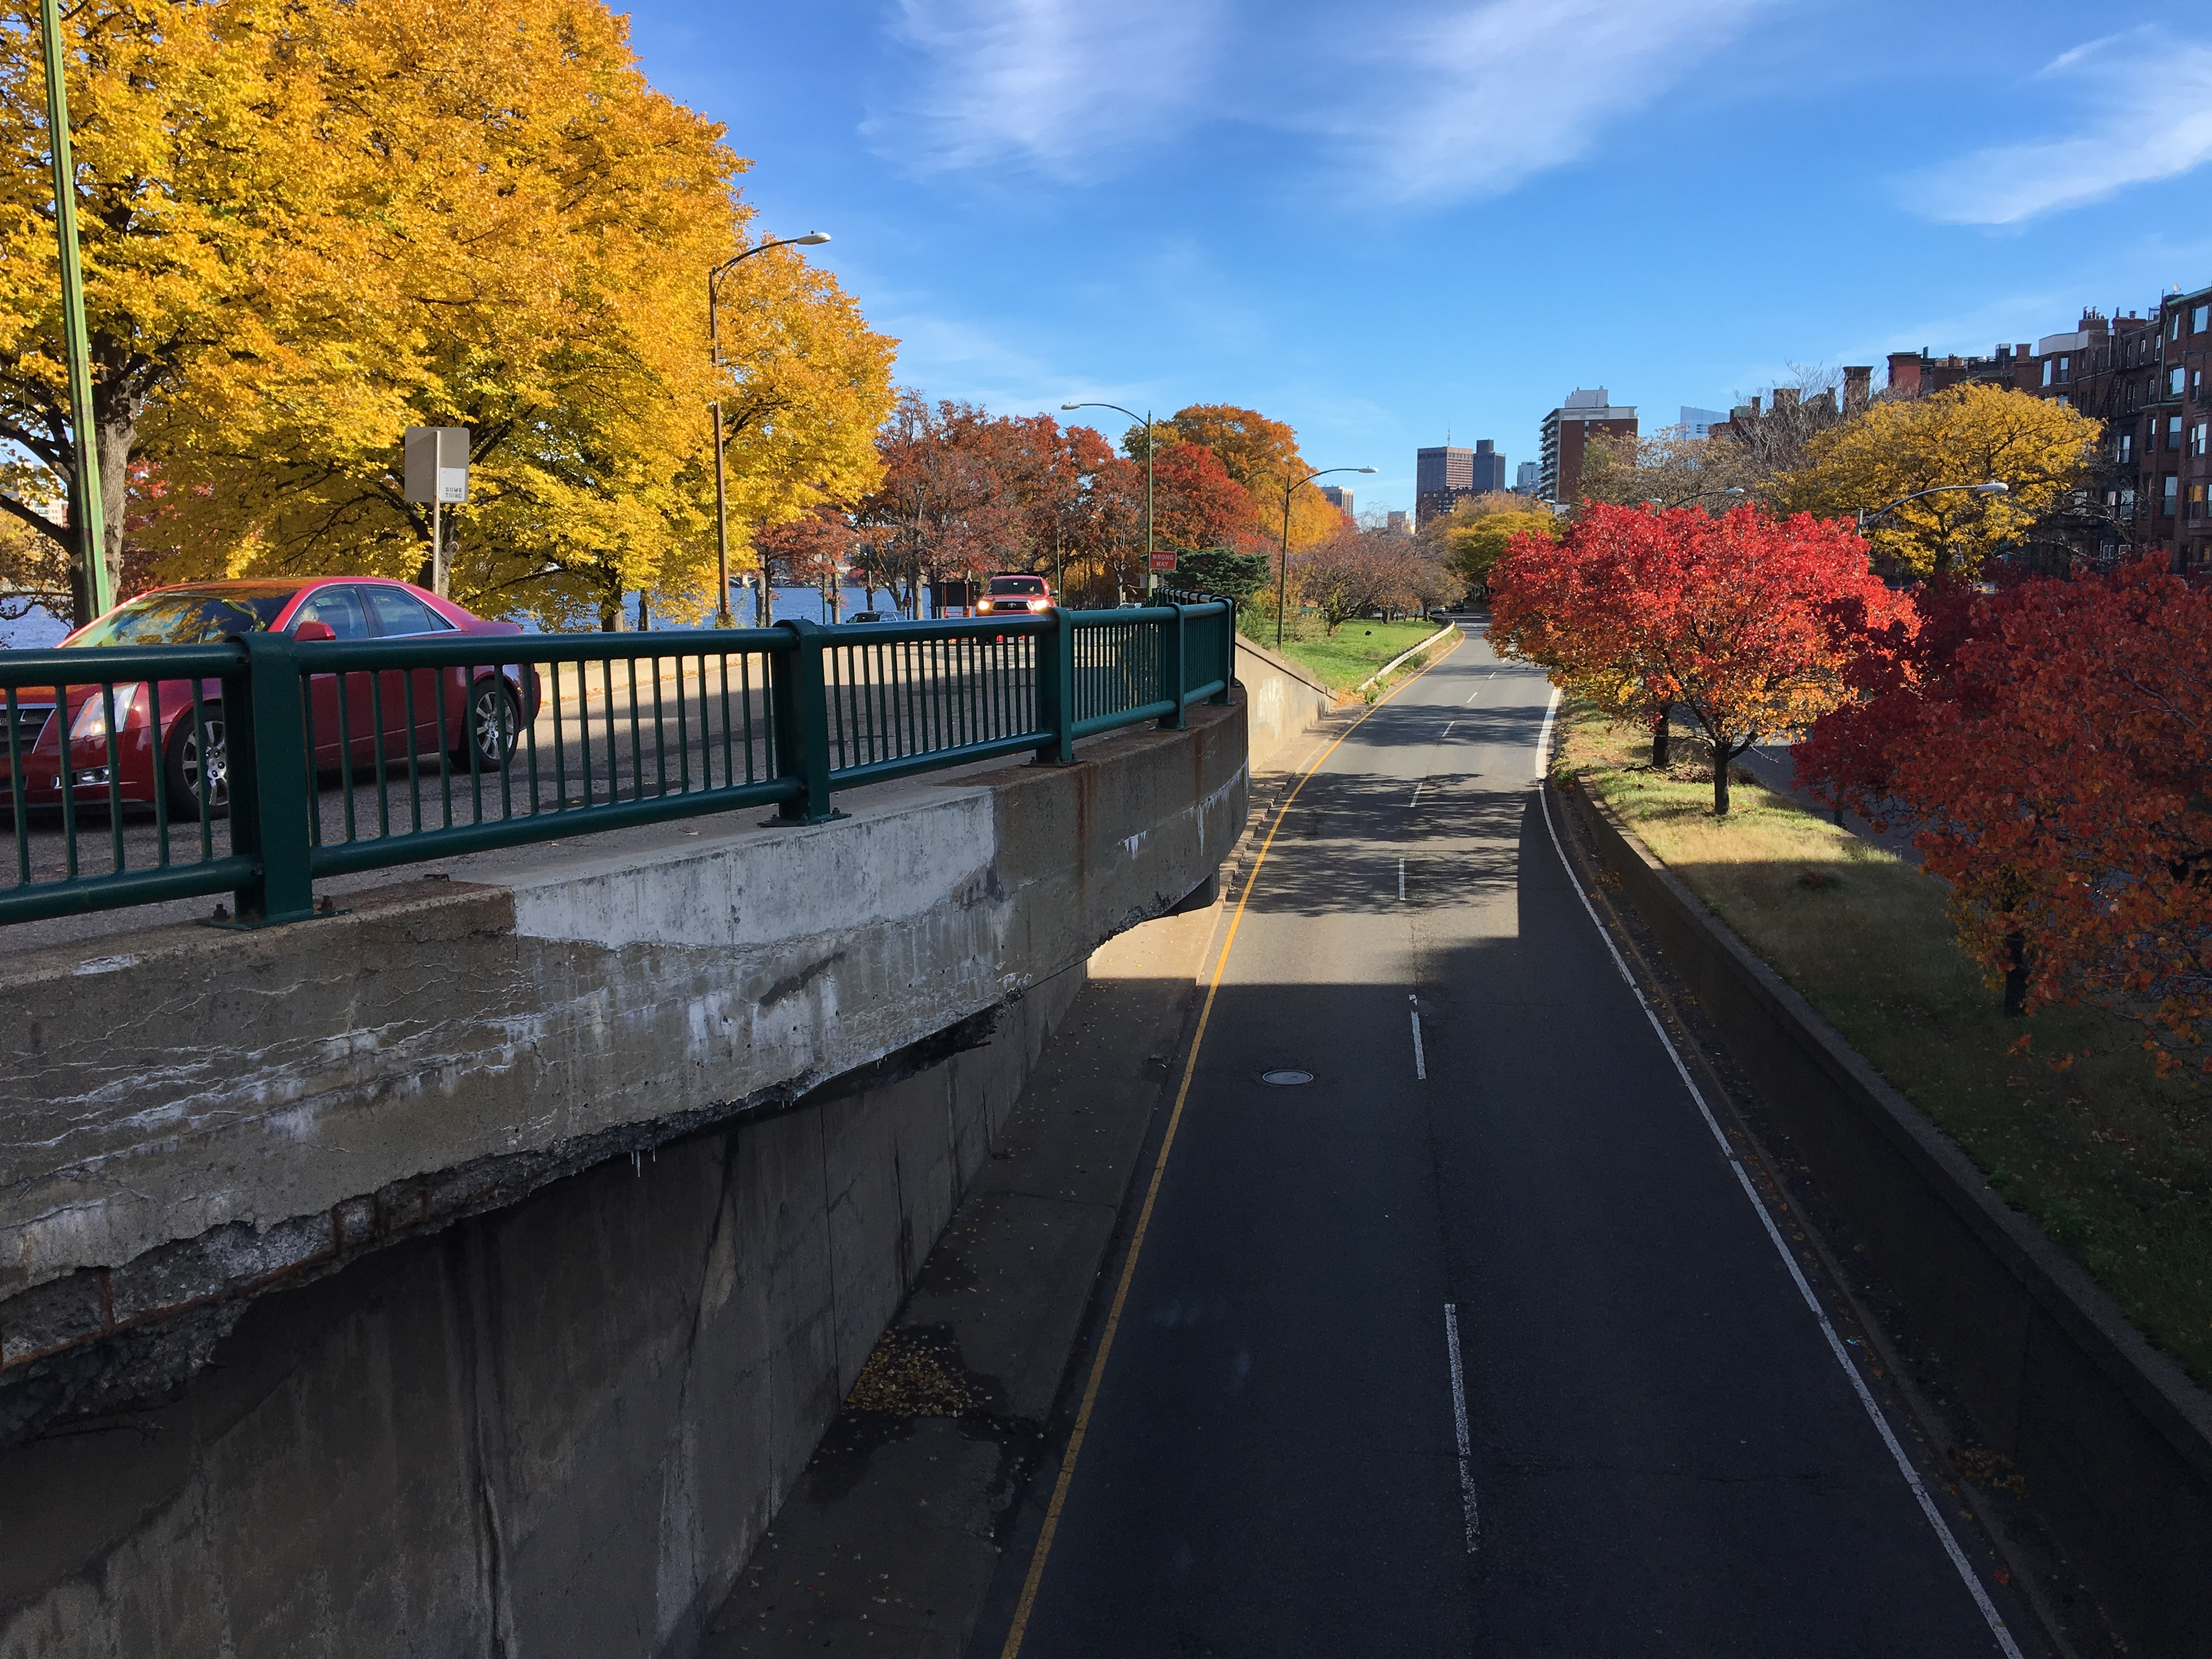 An overpass with yellow trees to the left and red trees to the right, with blue sky in the middle.